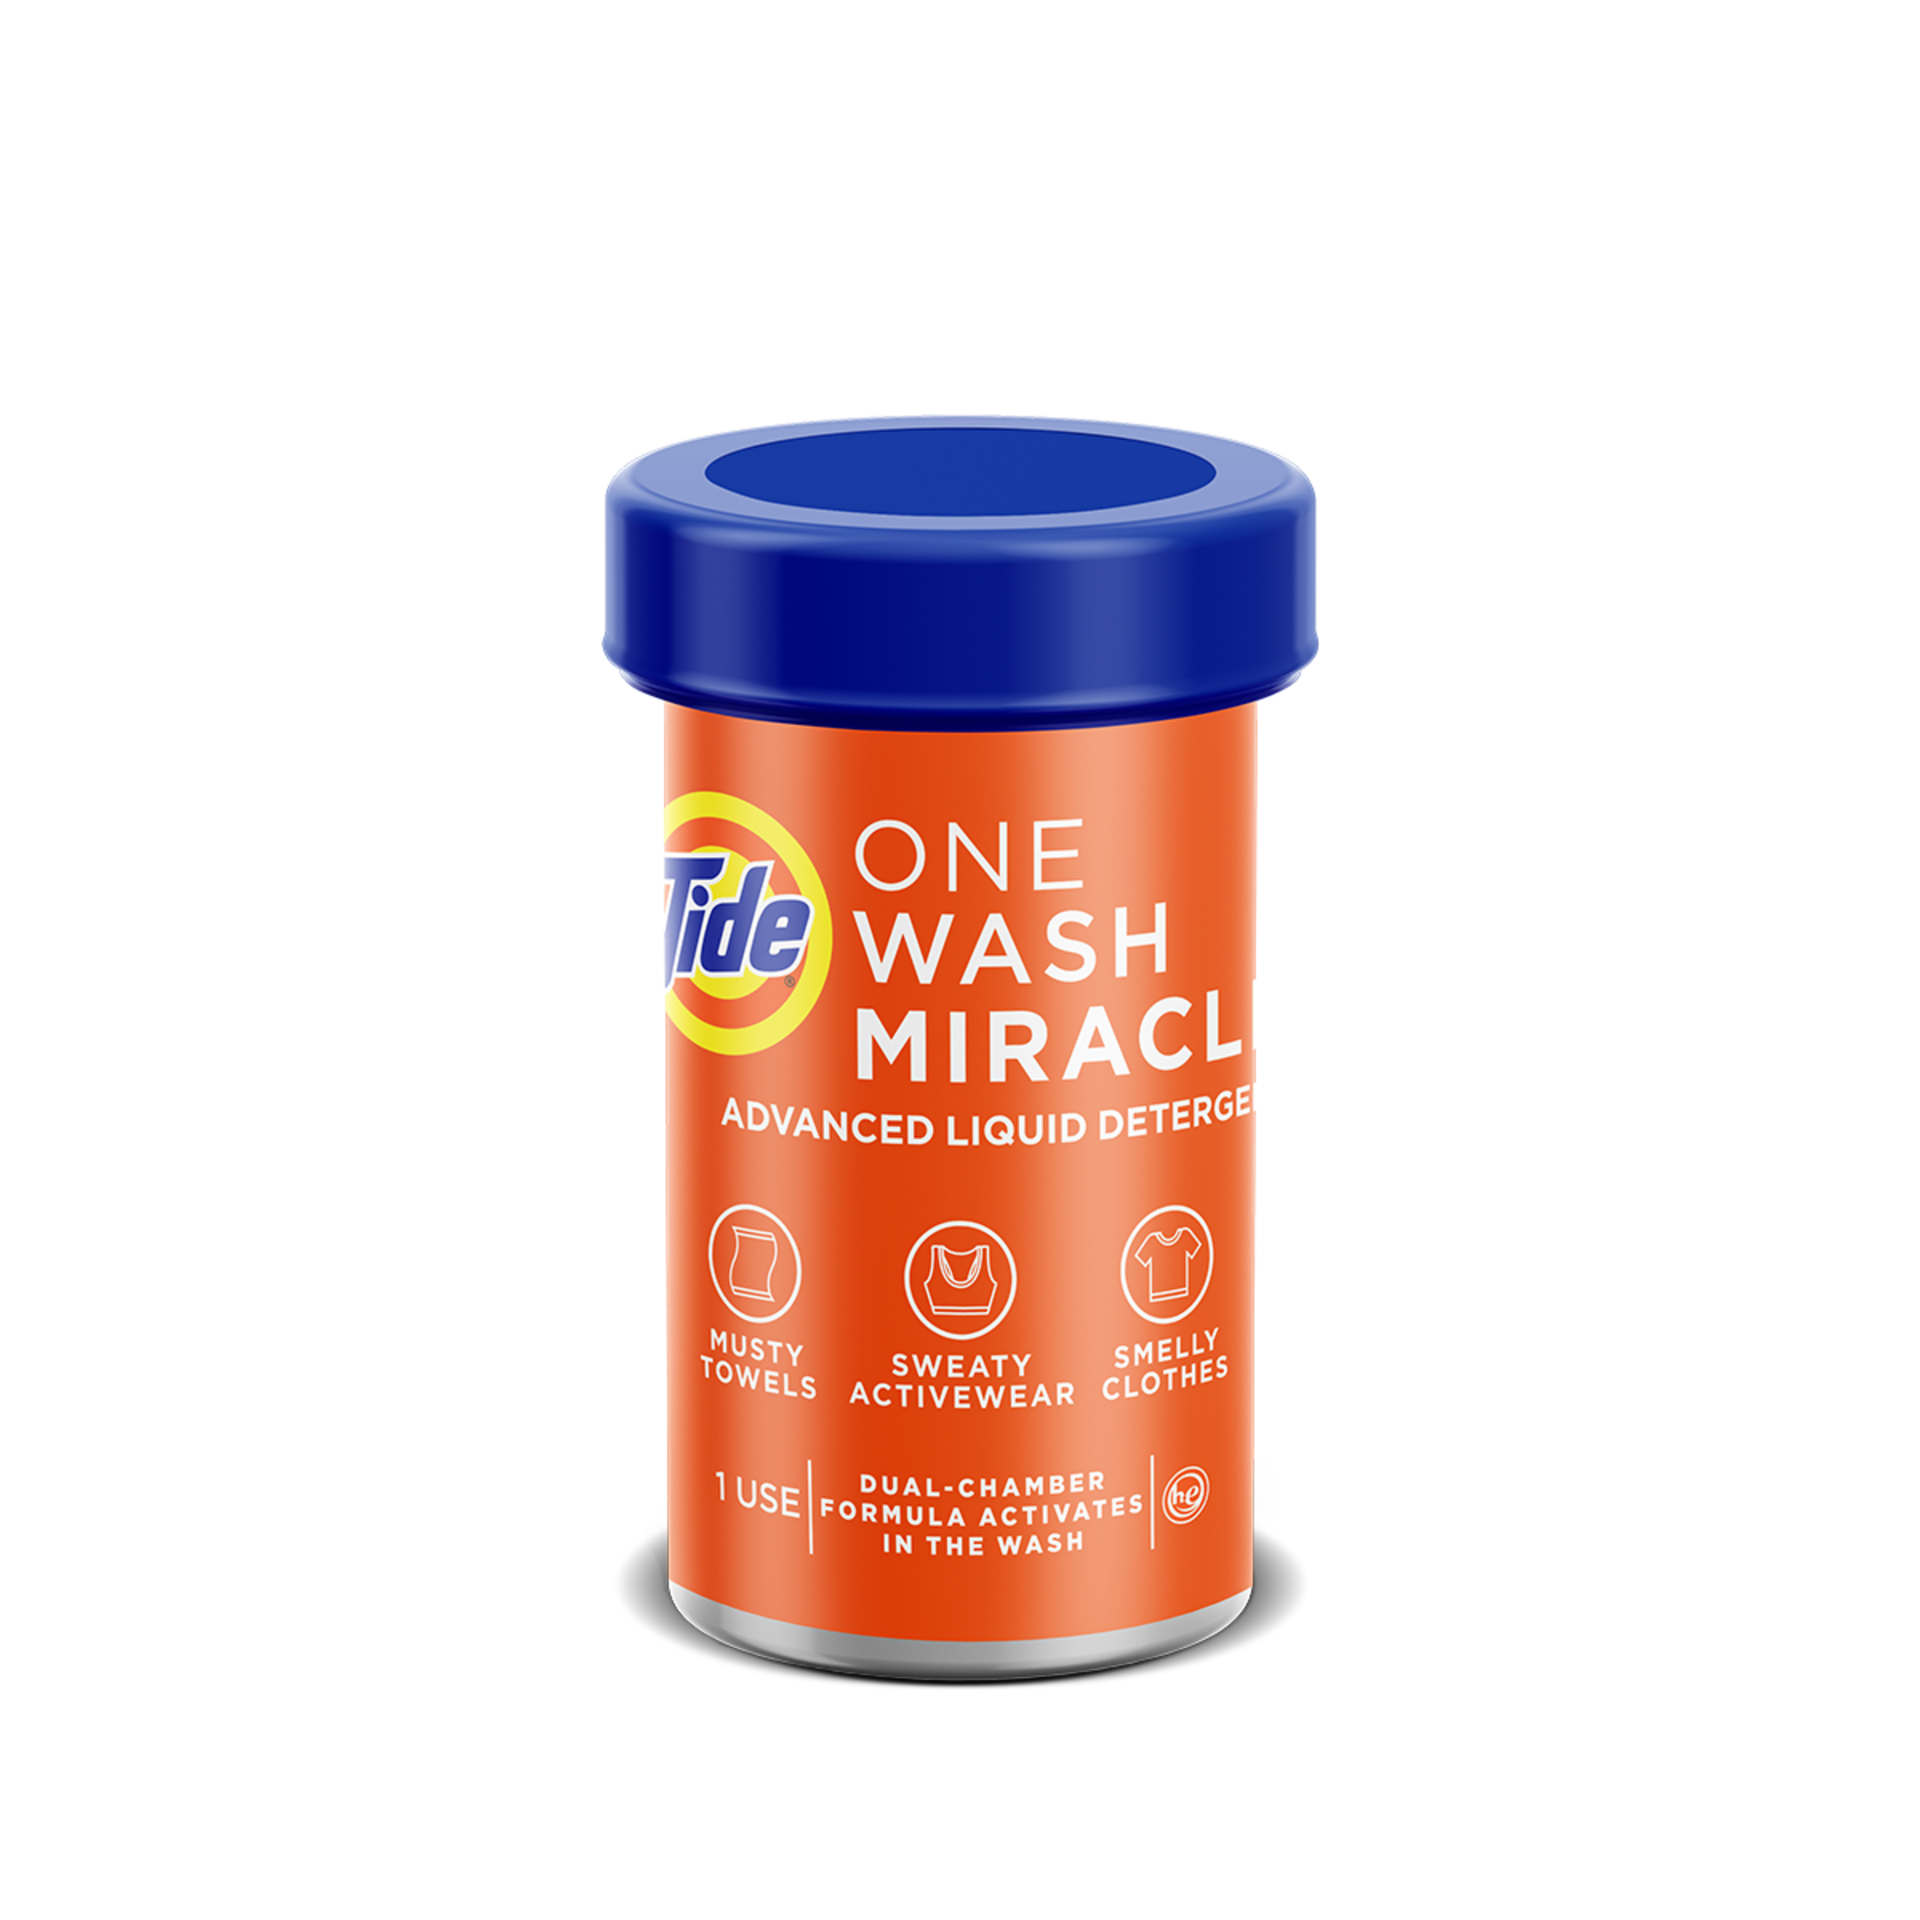 Tide One Wash Miracle - Powerful Deep-Cleaning Laundry Solution